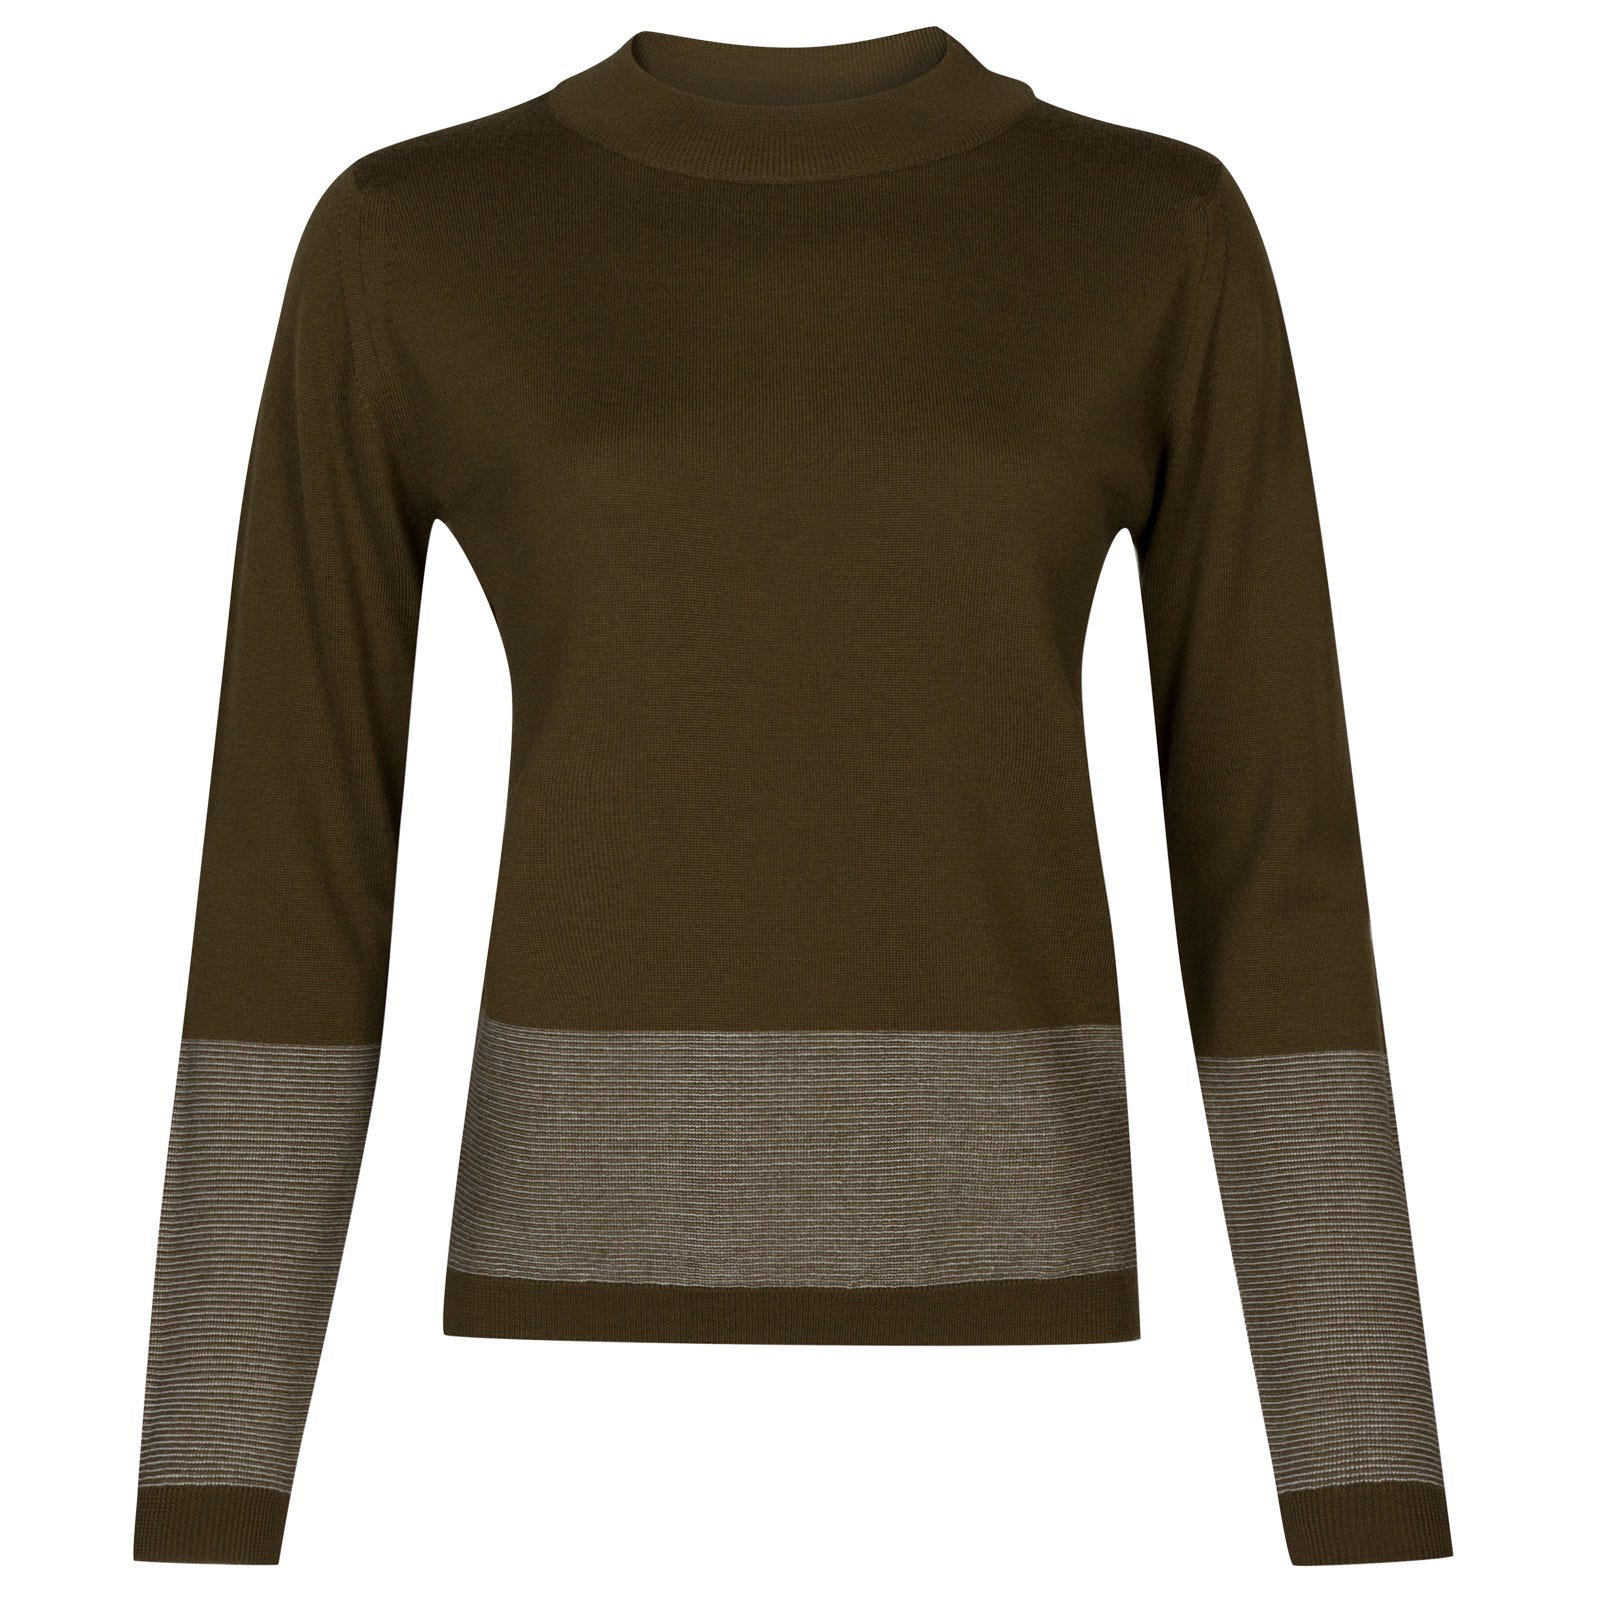 John Smedley sable Merino Wool Sweater in Kielder Green/Snow White-M